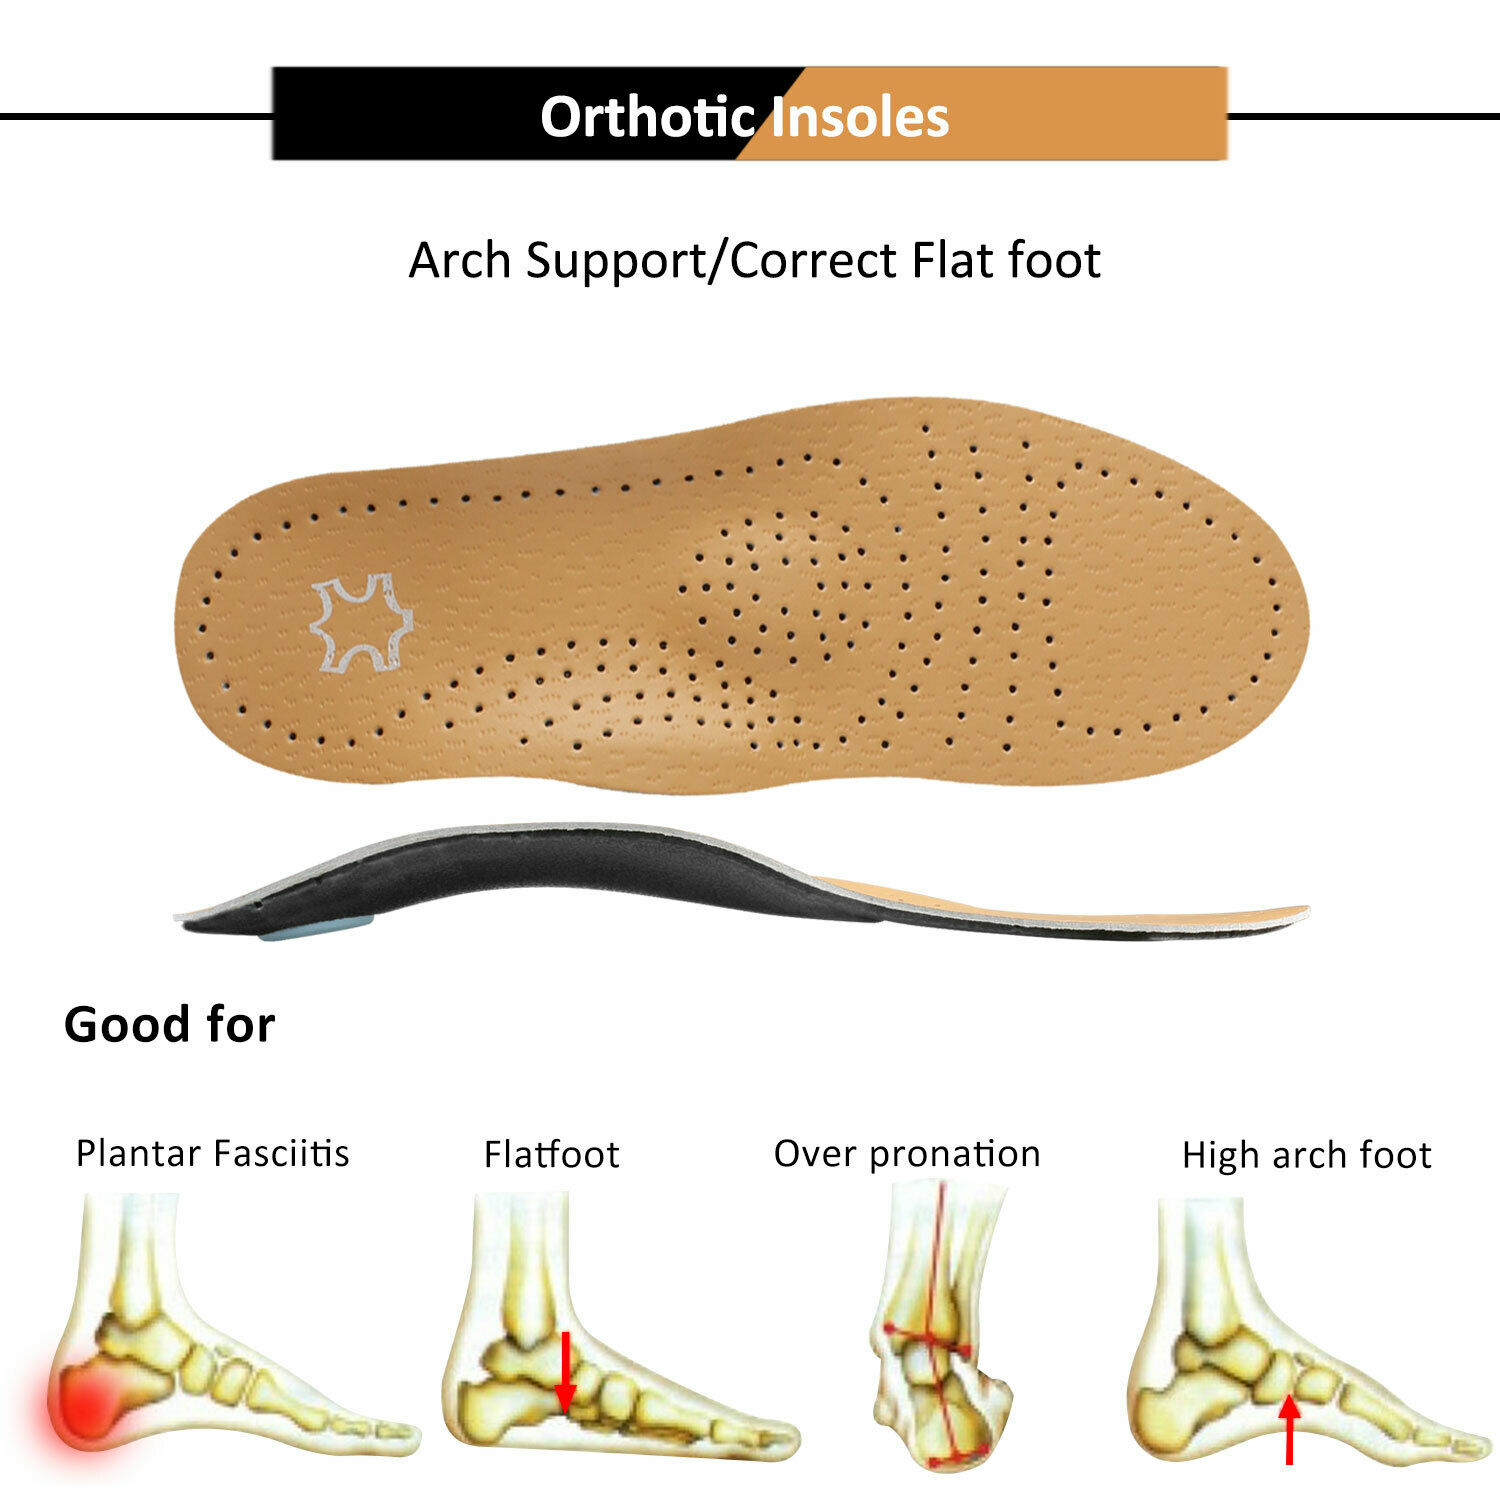 Arch Support Heel Orthopedic Leather Insoles Inserts Plantar Fasciitis Shoe Clothing & Shoe Care